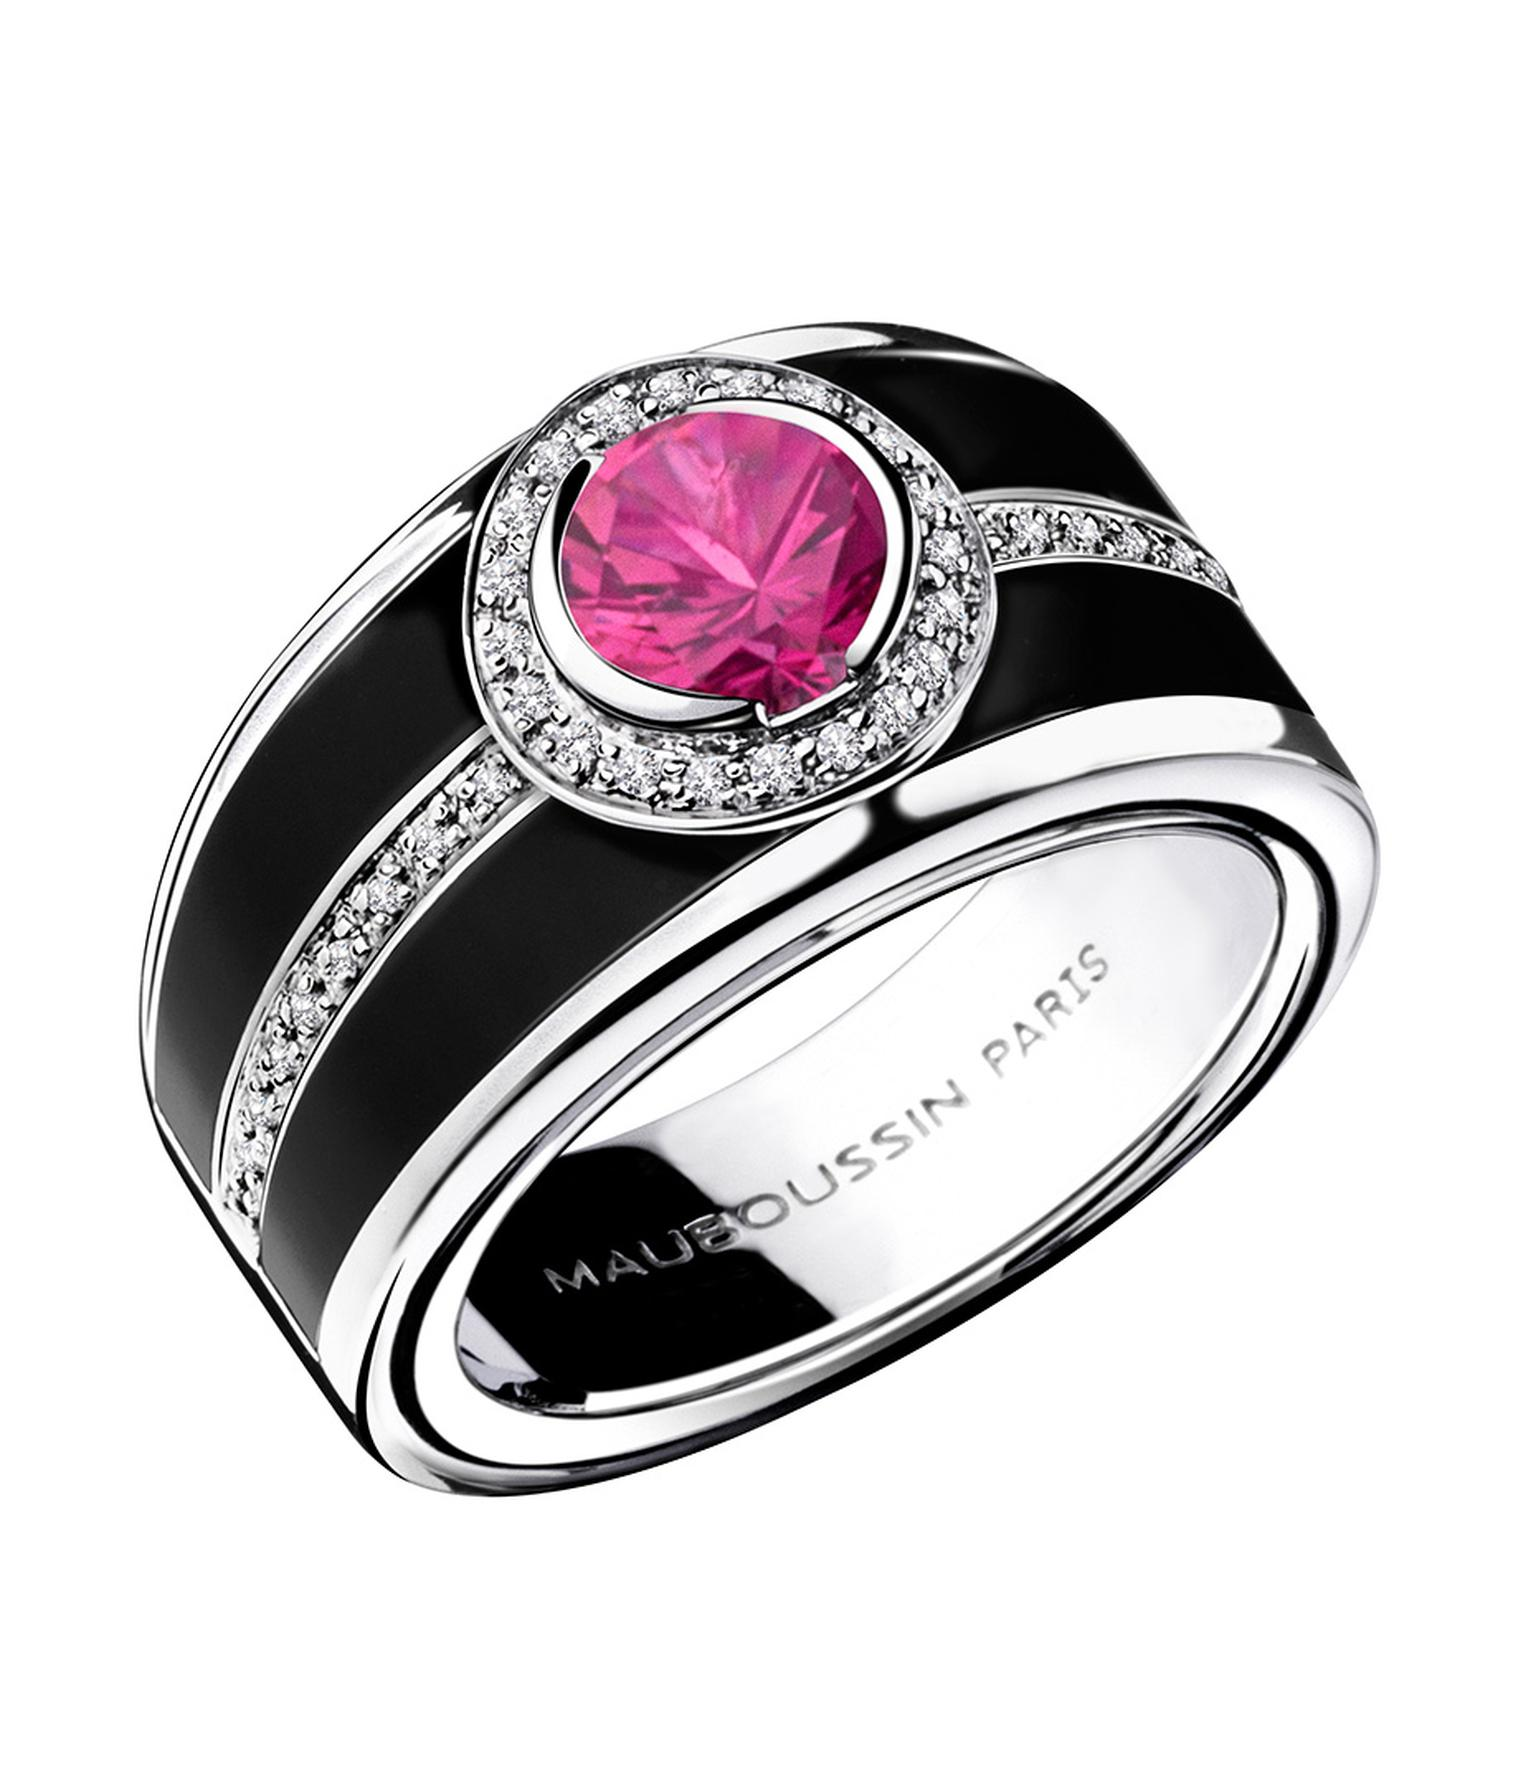 In black lacquer with a 1.03ct pink sapphire surrounded by pavé diamonds, Mauboussin's Bonbon Rose ring is also available with either a blue sapphire or black diamond ($7,850).